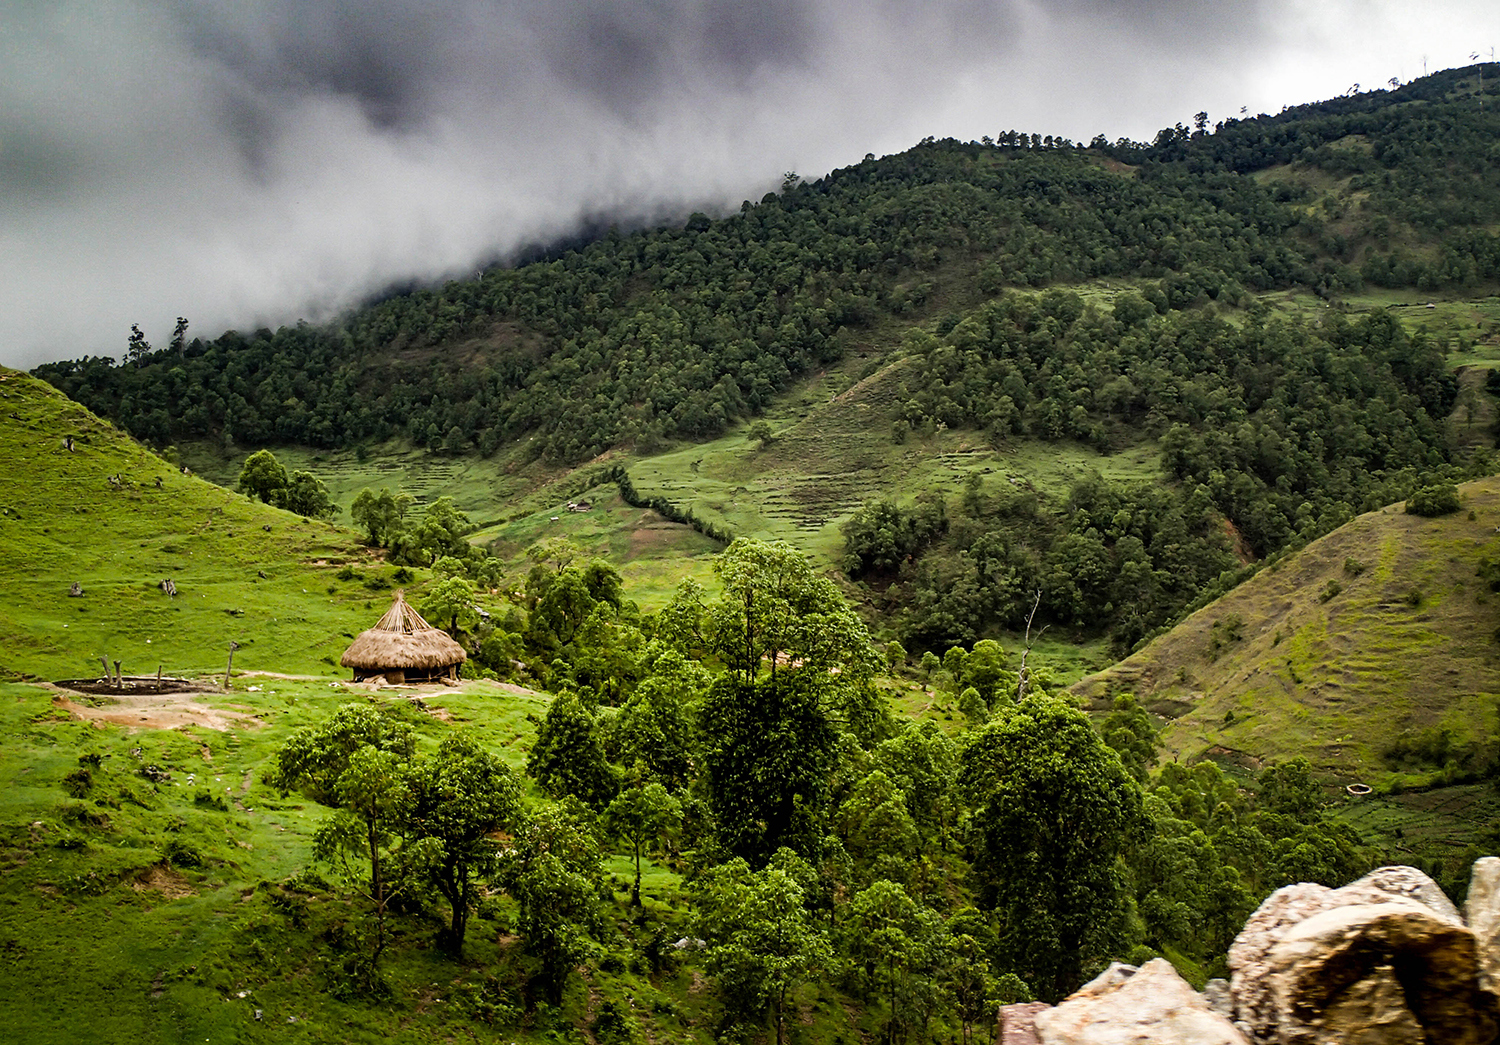 <p>A hut in the mountains en route to Ramelau, with the dramatic weather of the rainy season appearing again!</p>